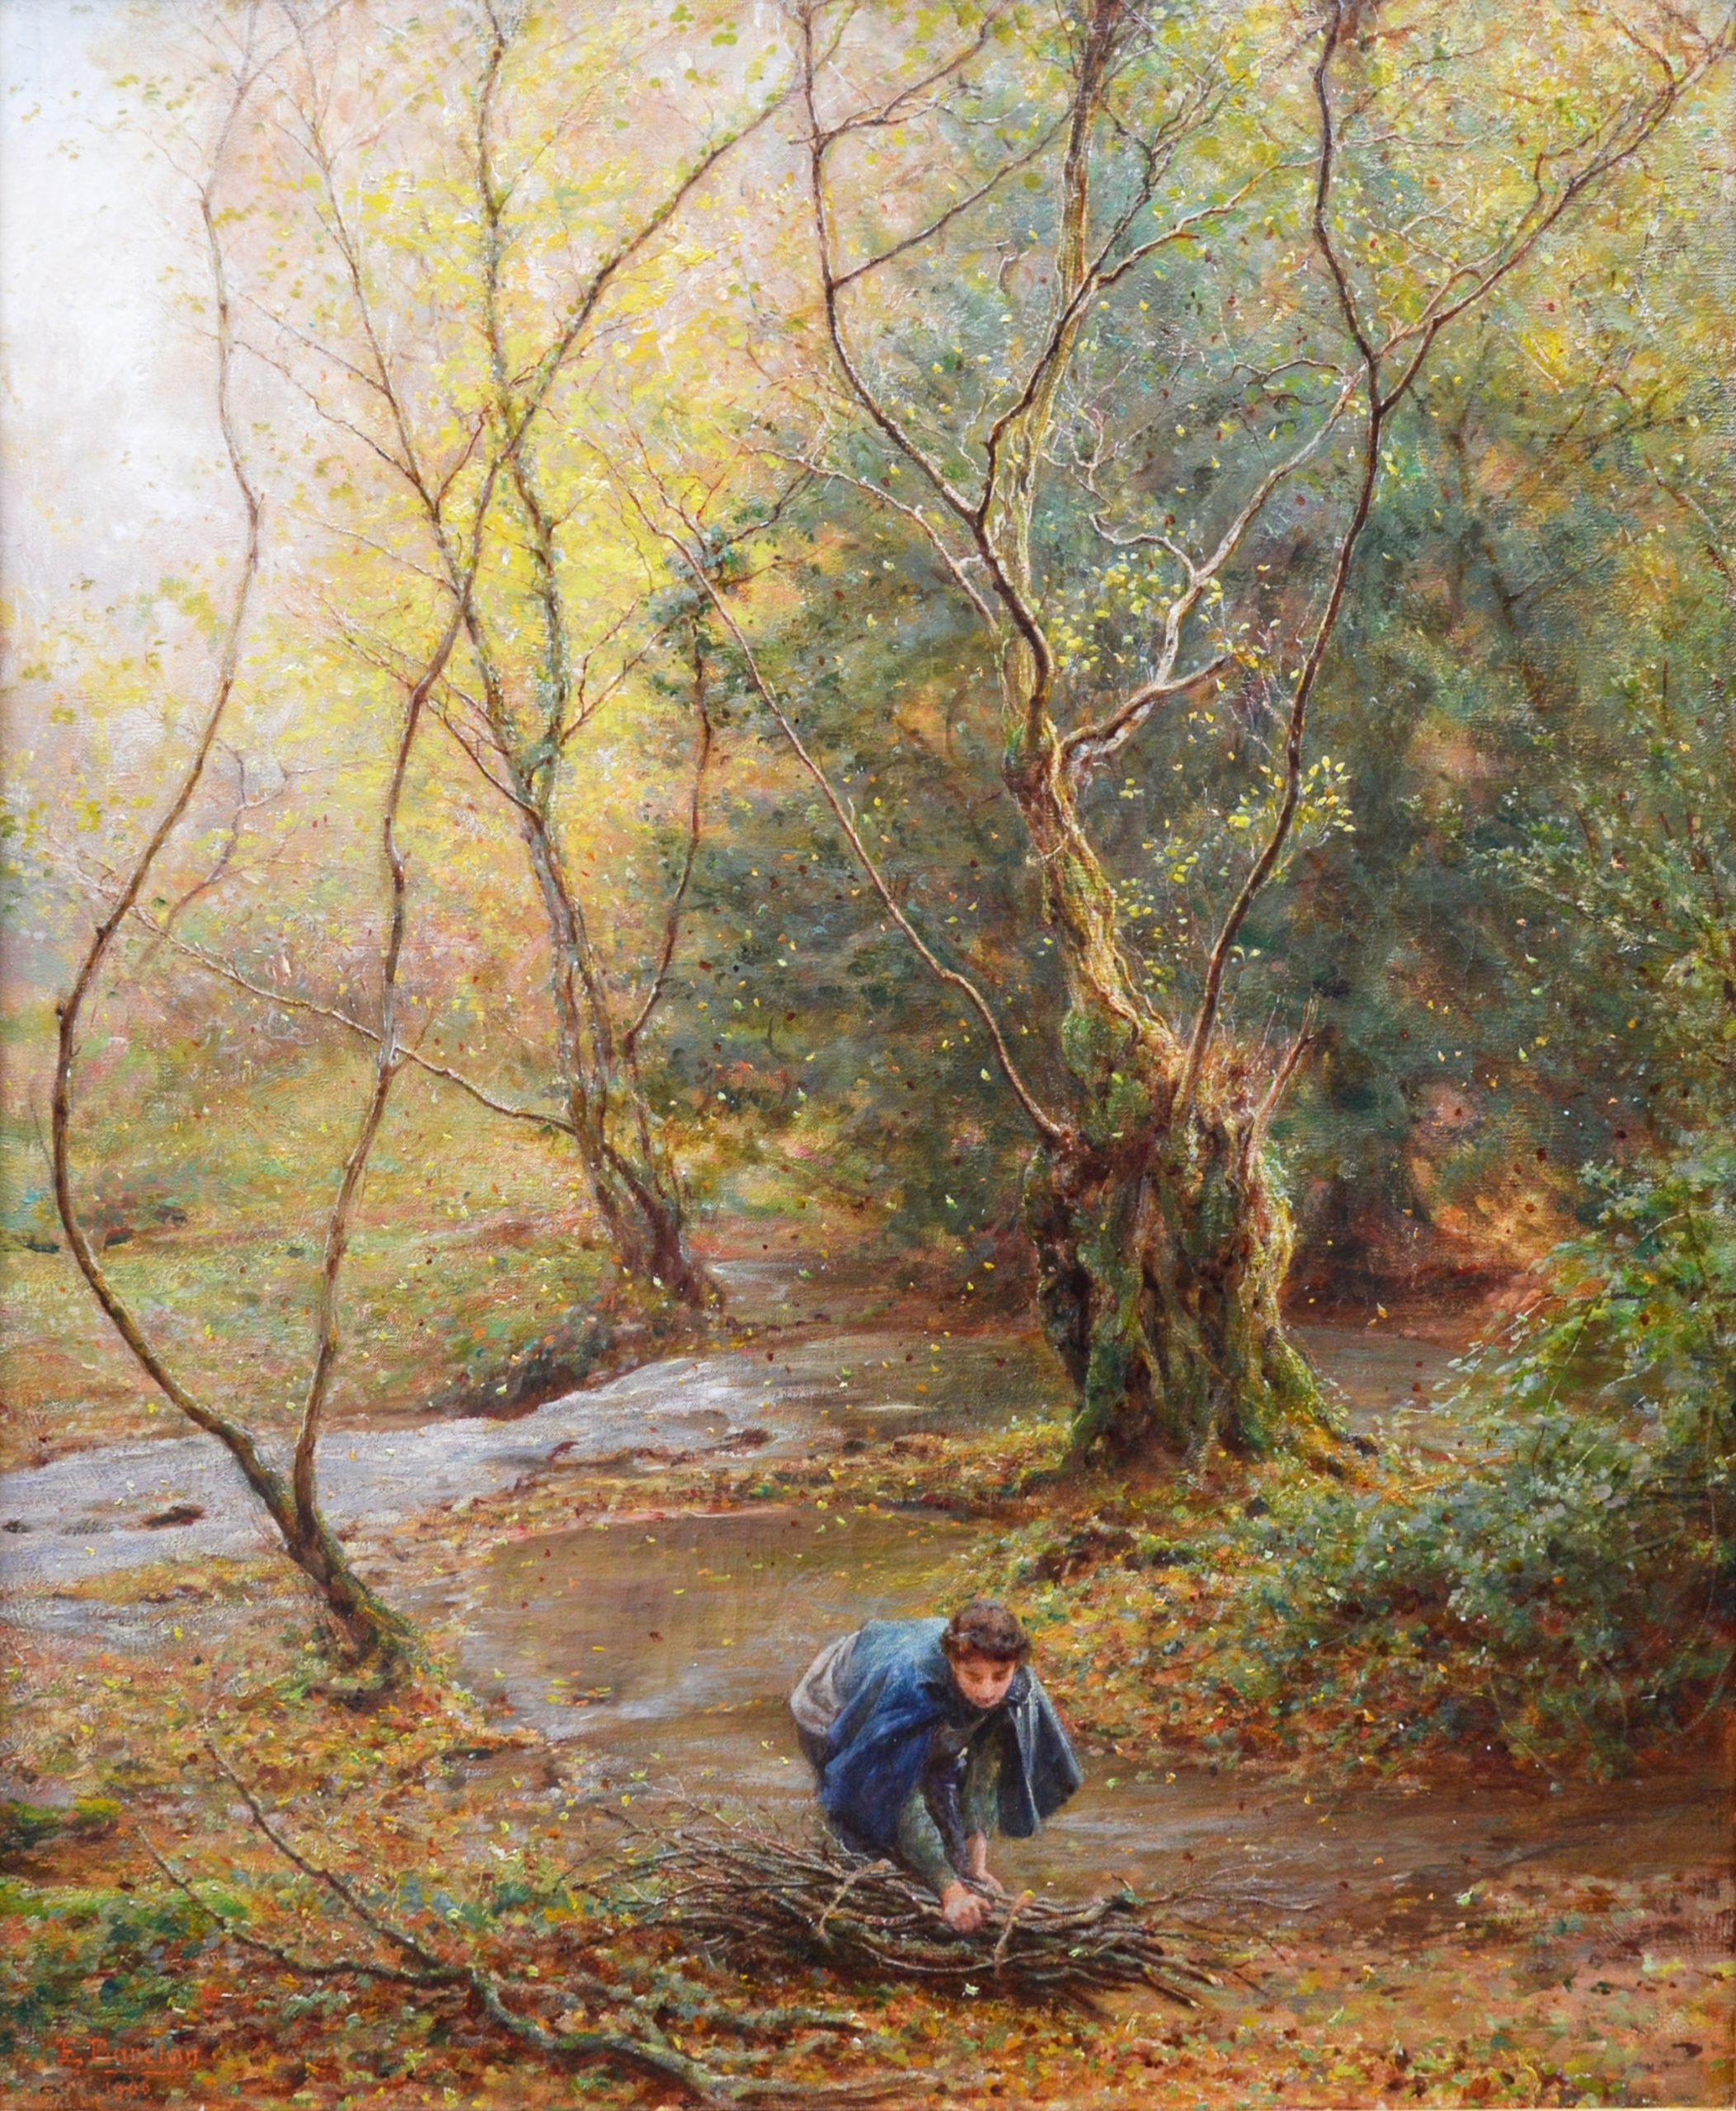 Falling Leaves - Edwardian Royal Academy Oil Painting 1906 Image